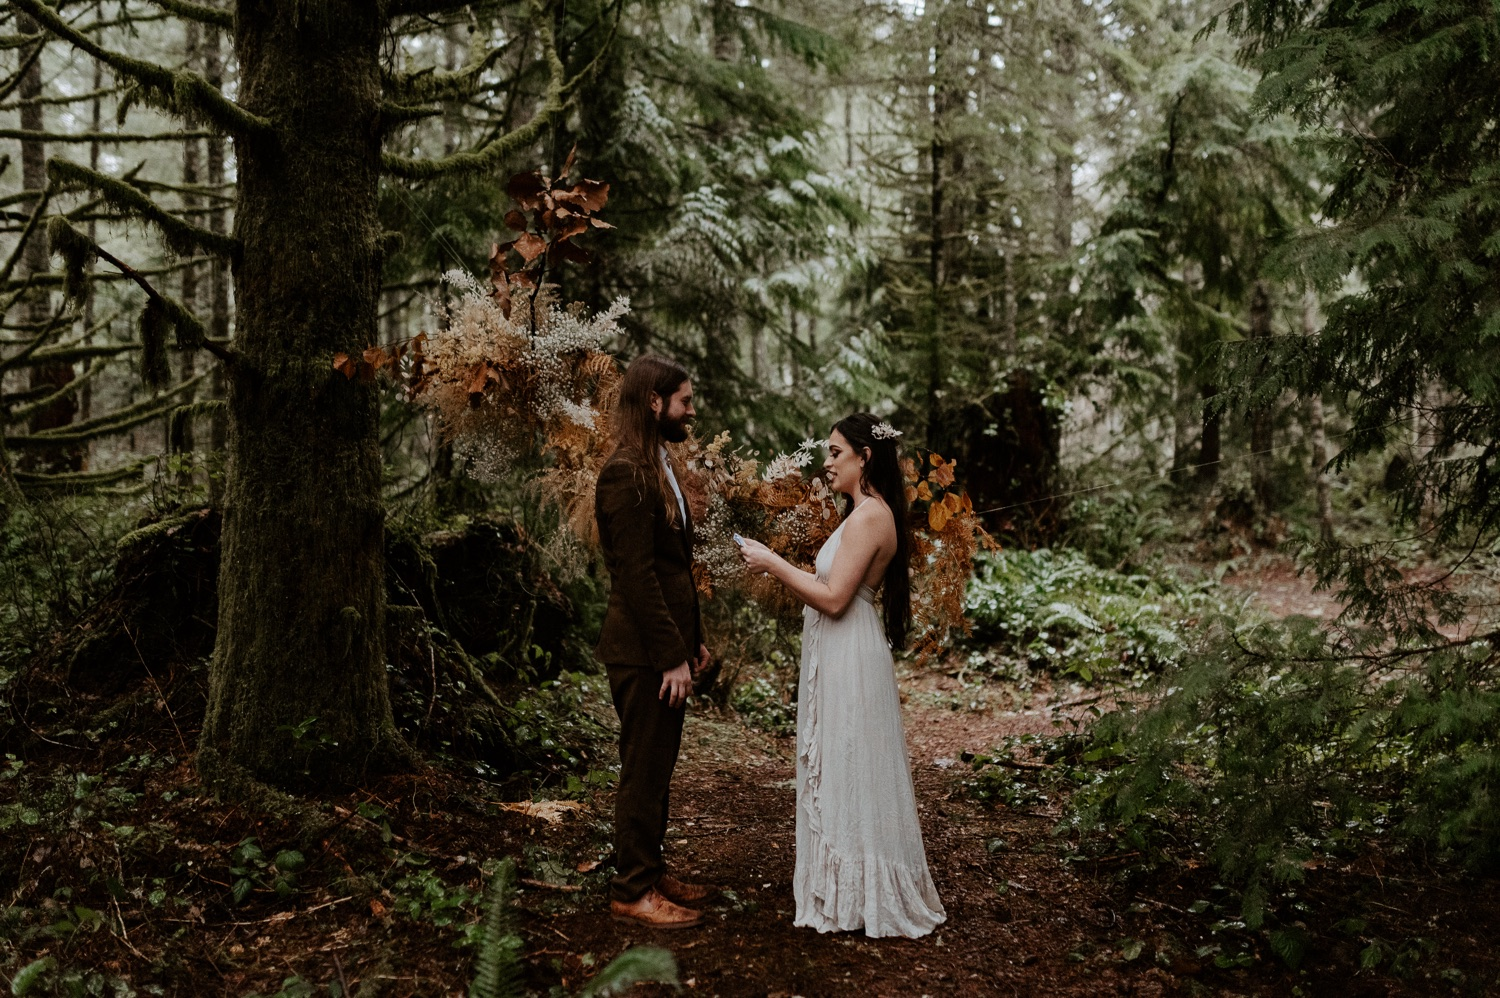 The Woodlands House Sandy Oregon Elopement Portland Elopement Photographer PNW Adventurous Elopement Anais Possamai Photography 016